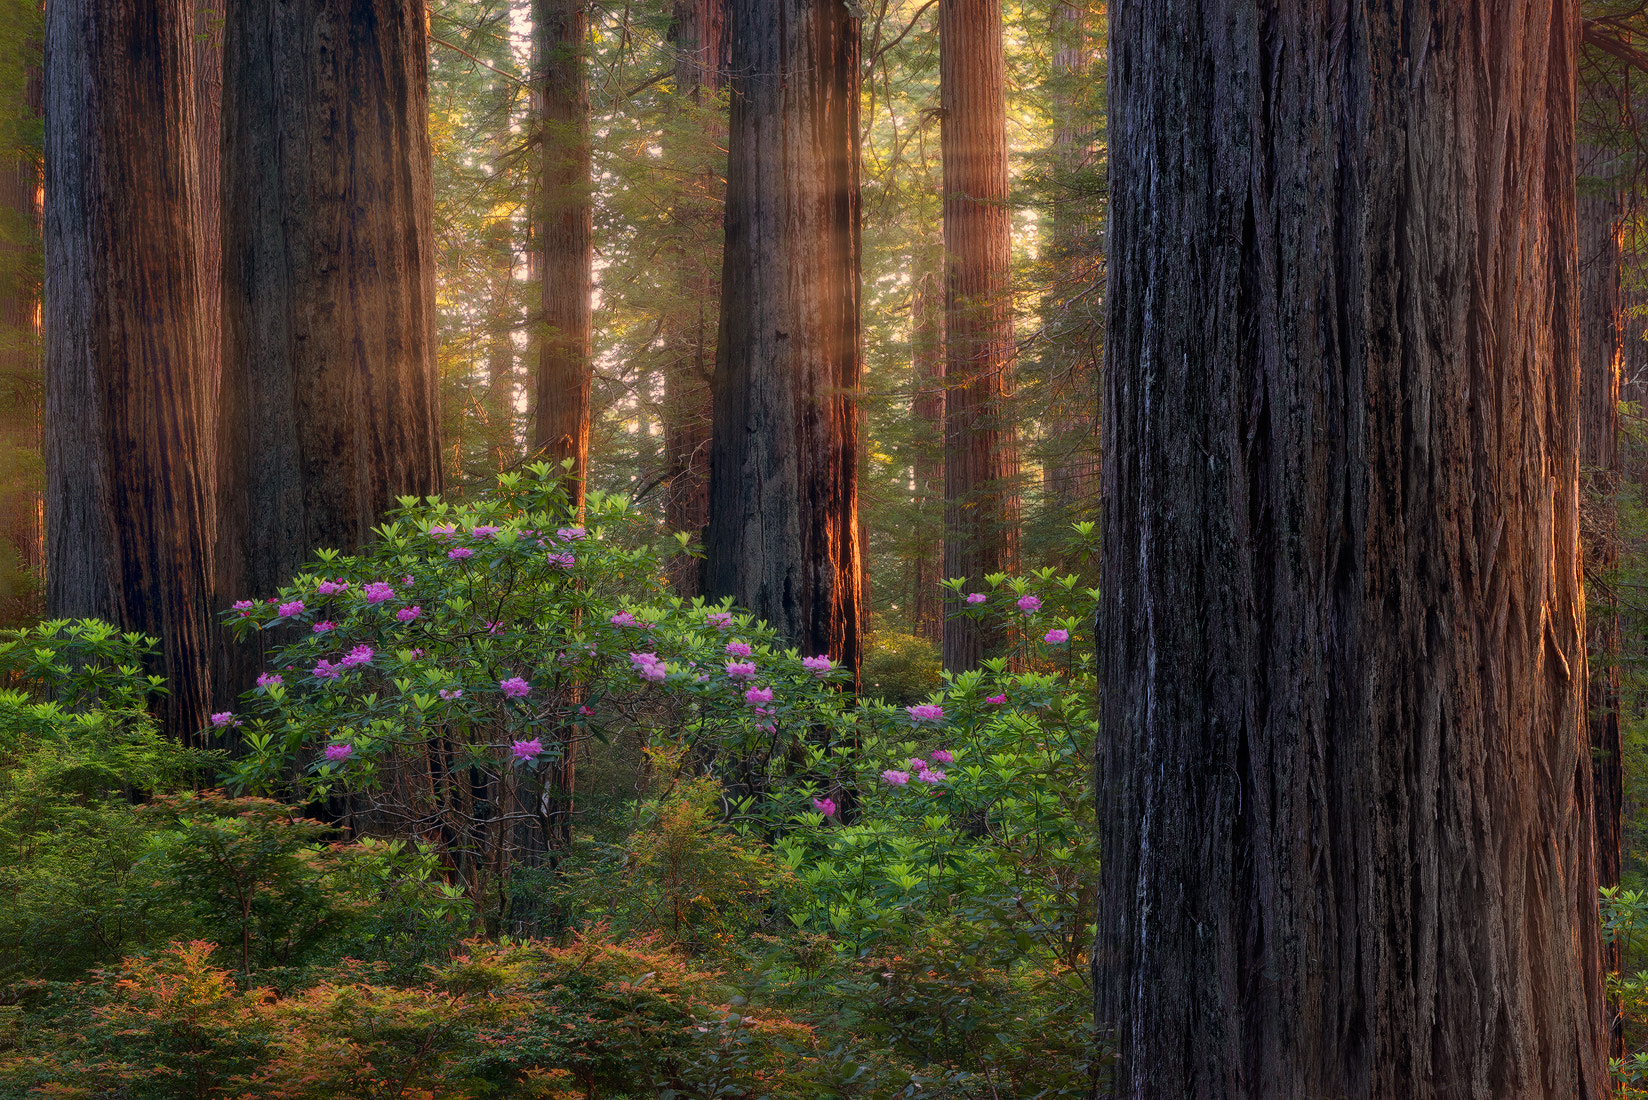 Photograph Relapse by Miles Morgan on 500px